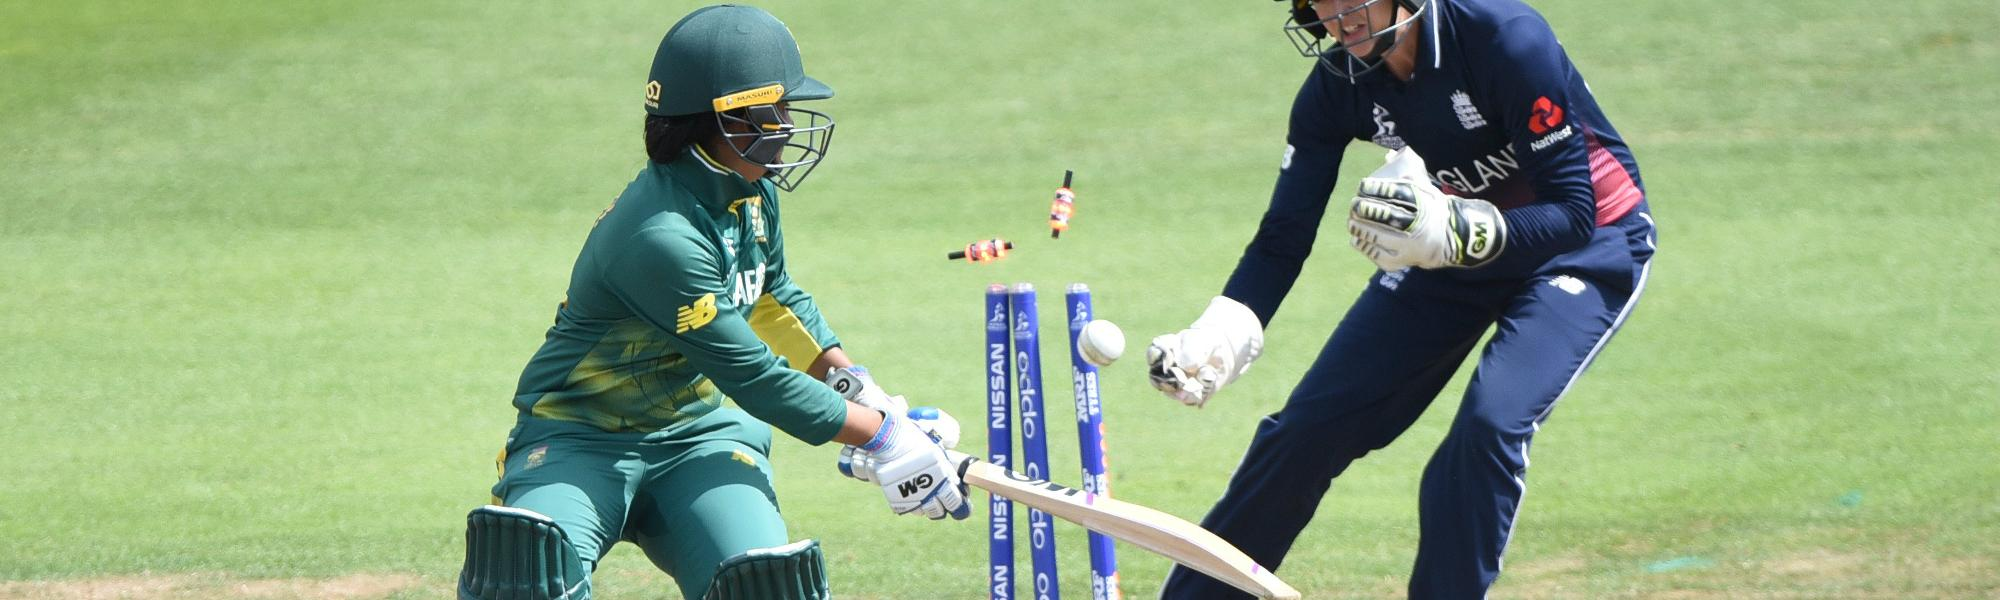 Sarah Taylor was just as good behind the stumps, effecting six dismissals, including a leg-side stumping of South Africa's Trisha Chetty in the semi-final